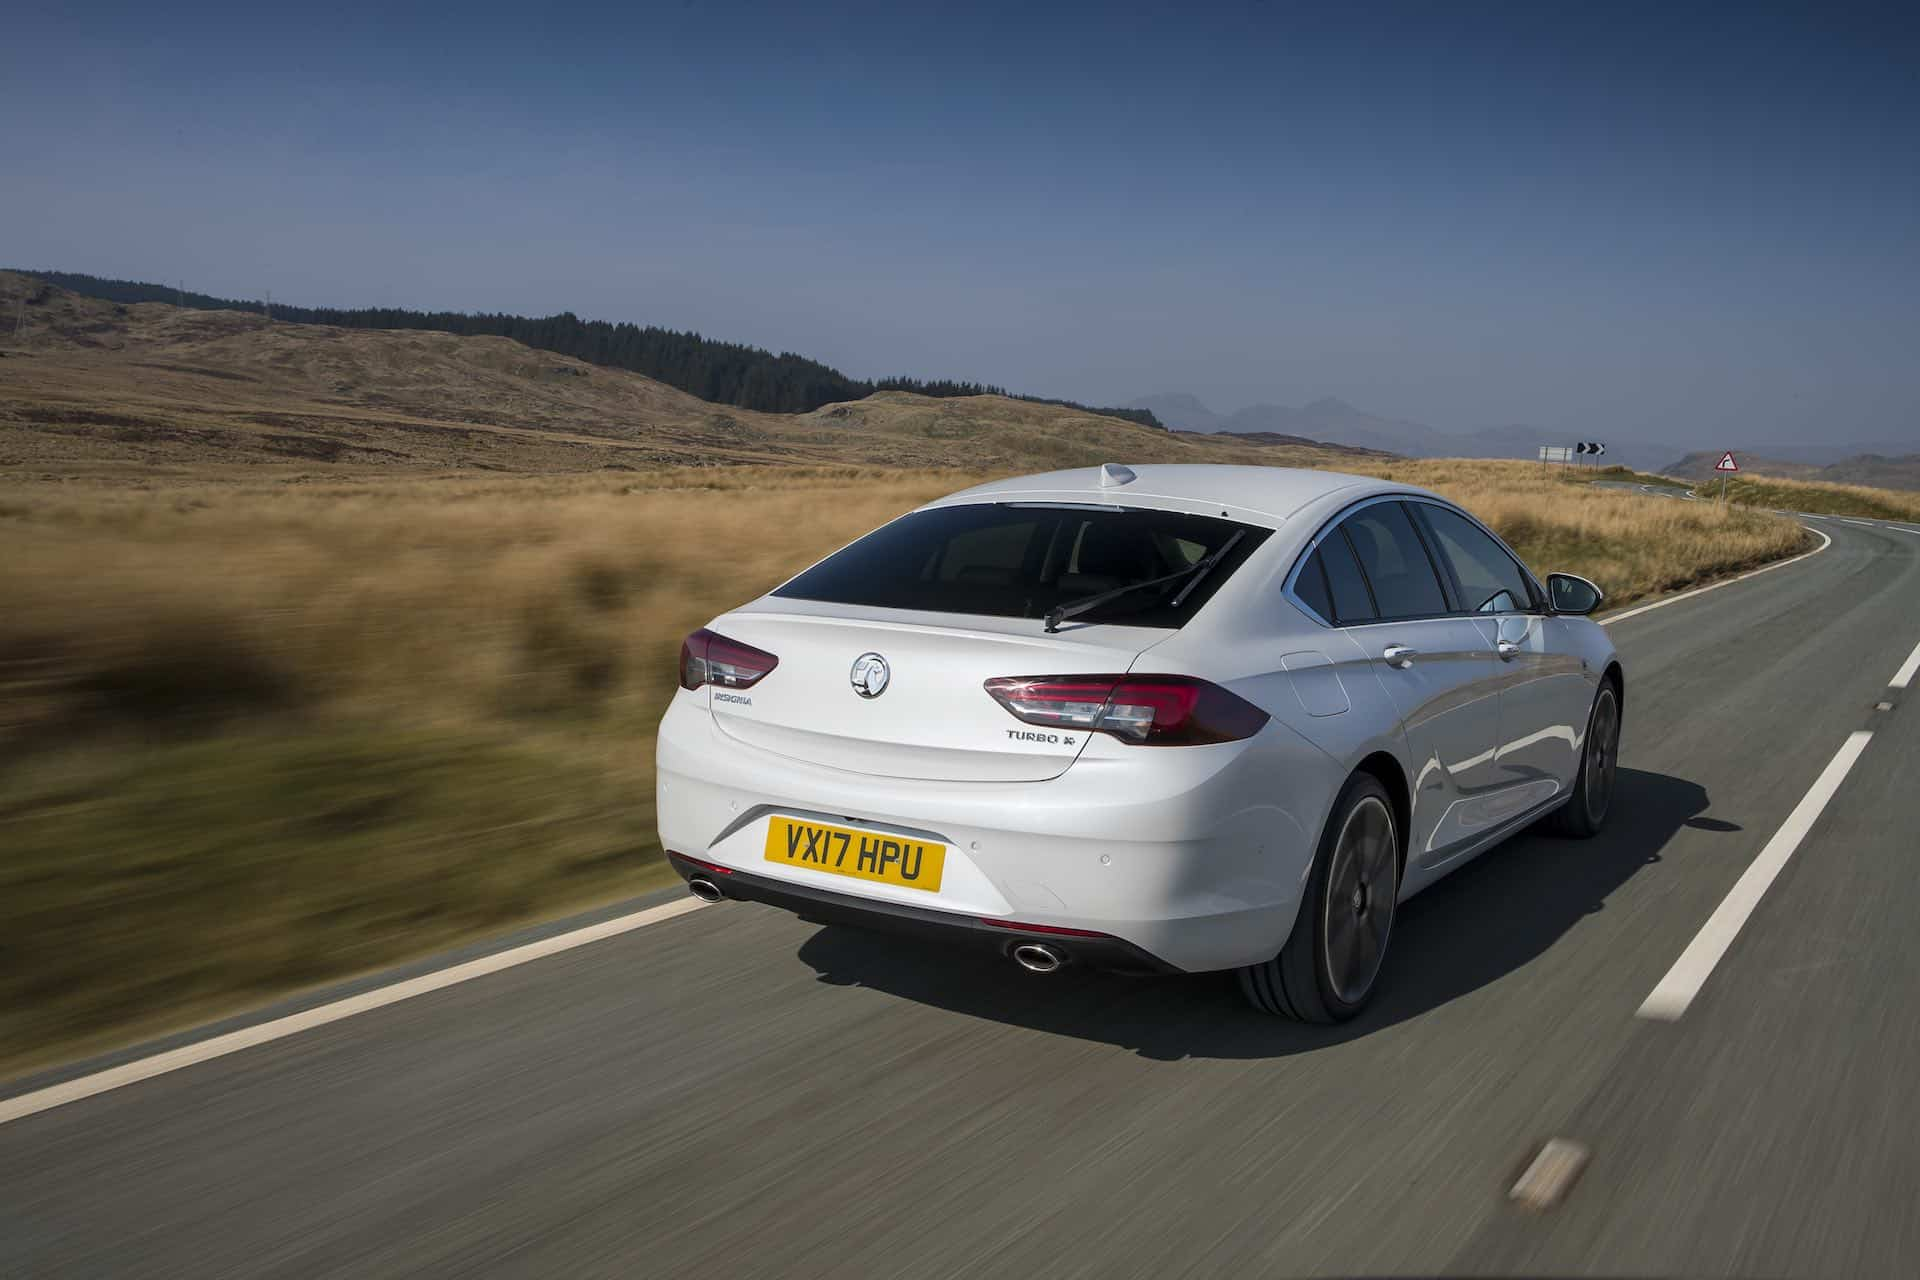 Vauxhall Insignia Grand Sport rear view | The Car Expert